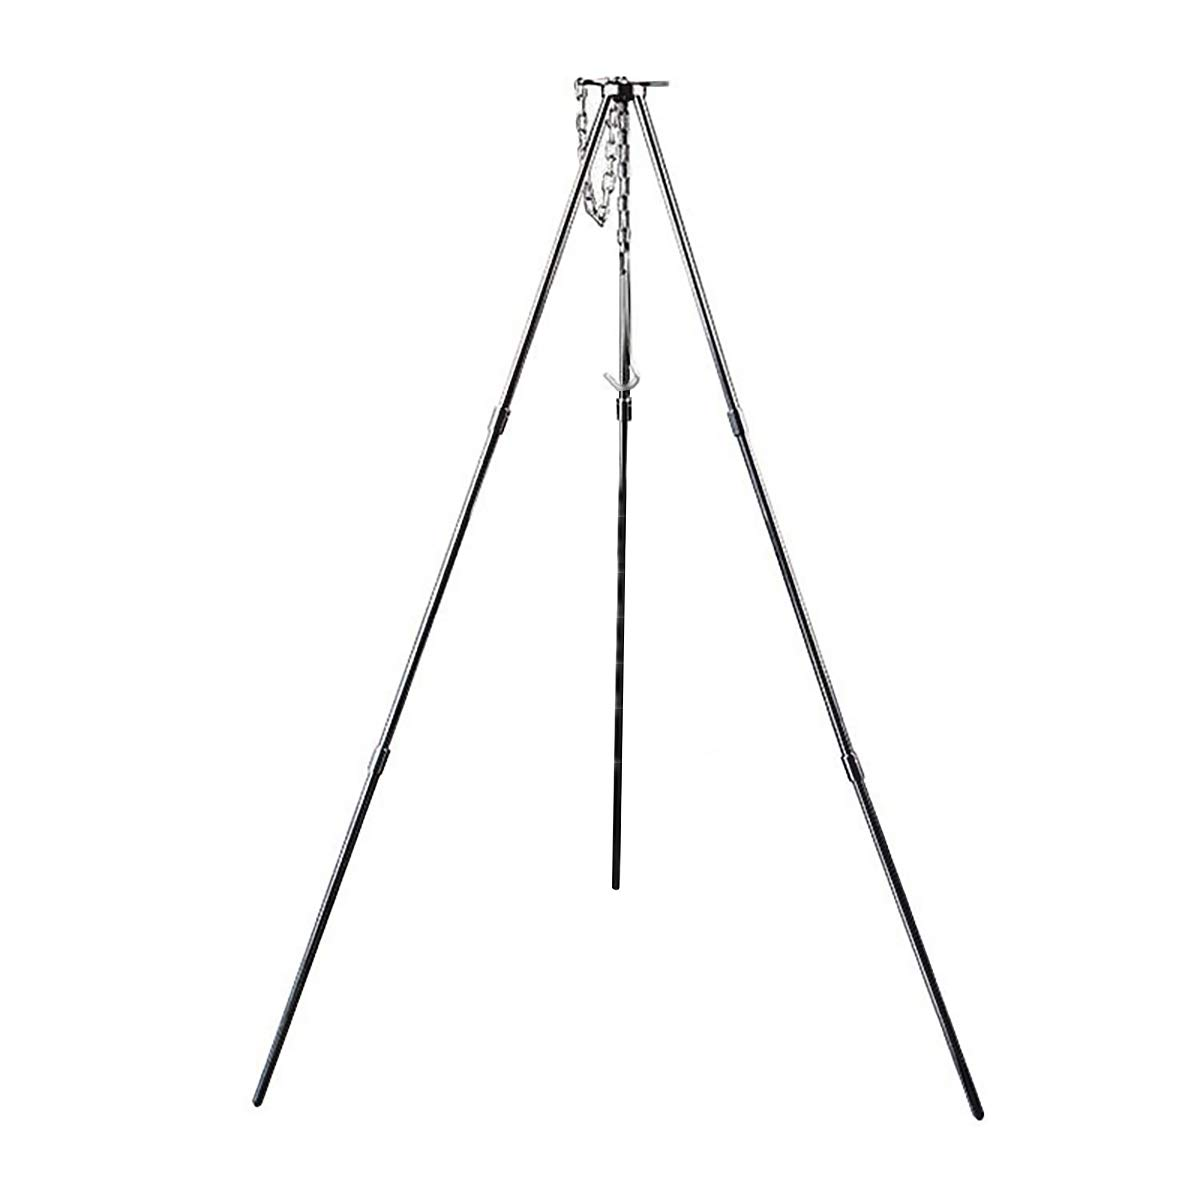 "Cozylkx 31"" Height Tripod Grills with Bag, Alloy Portable Campfire Grills for Outdoor Cooking Camping Picnic BBQ"